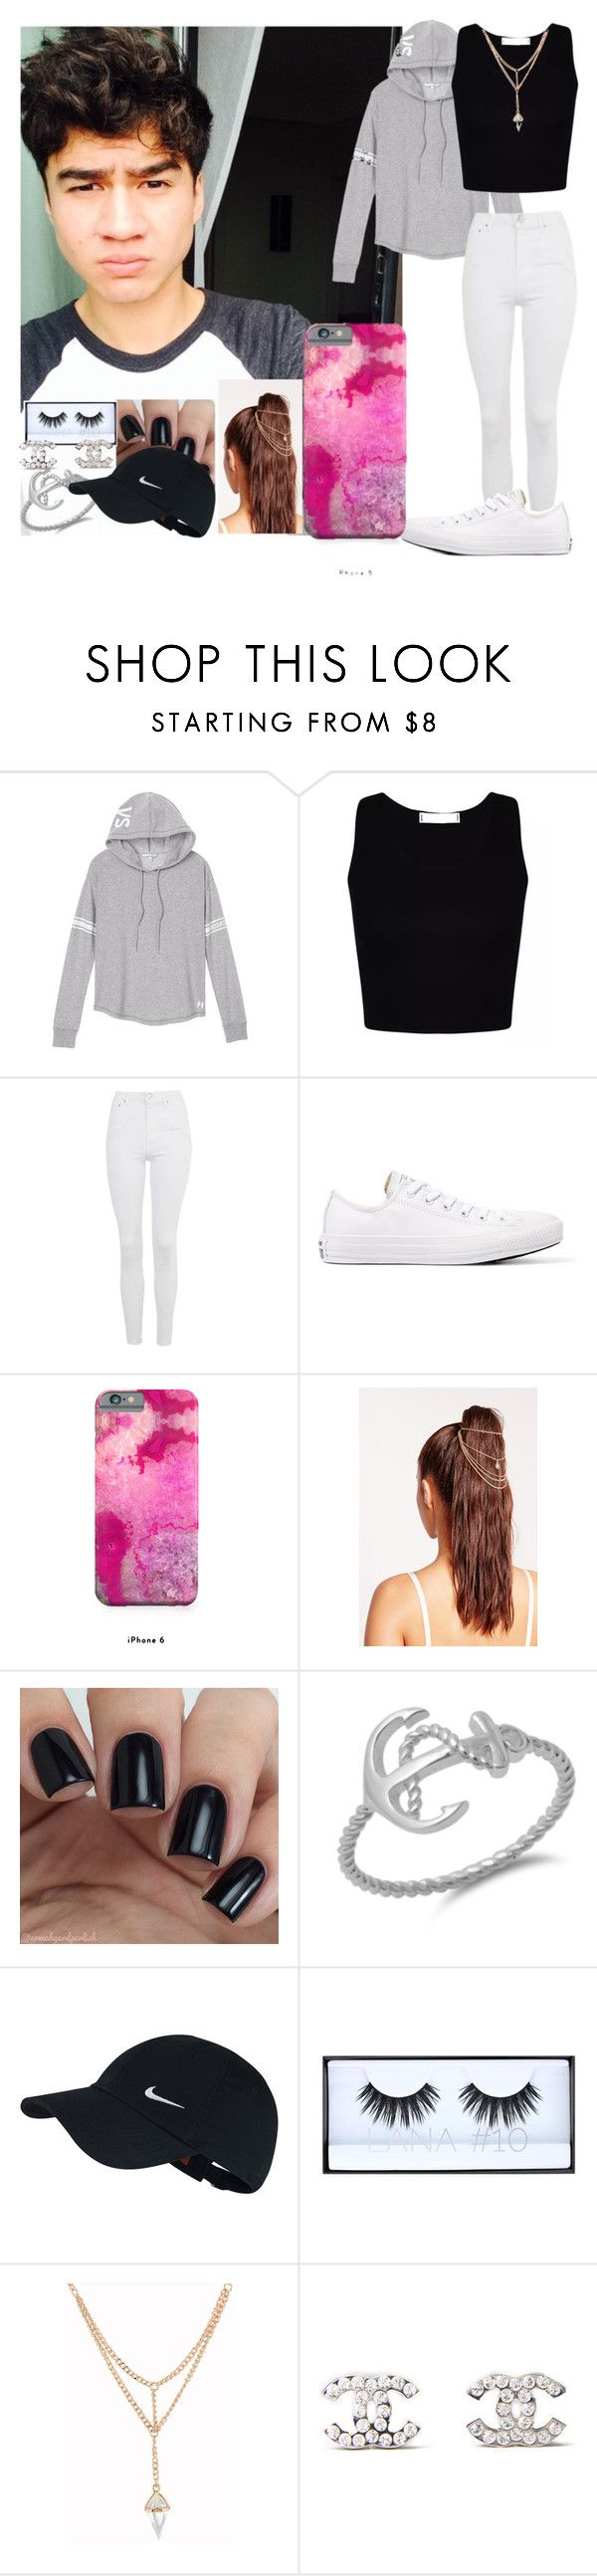 """""""Taking Morning Selfies with Calum"""" by harrypotterlover12 ❤ liked on Polyvore featuring Victoria's Secret, Topshop, Converse, Missguided, NIKE, Huda Beauty and Chanel"""